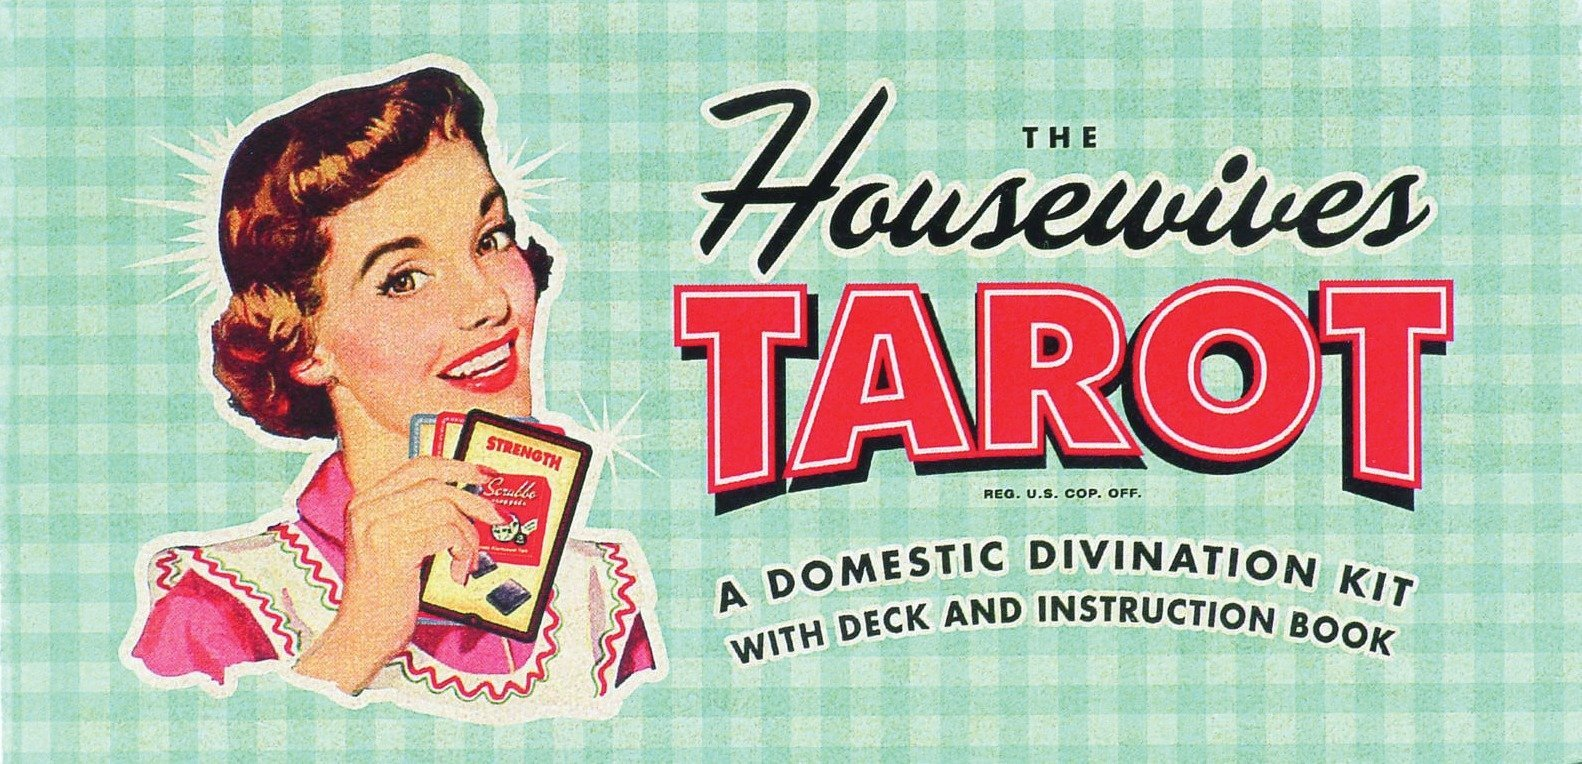 Housewives Tarot Review